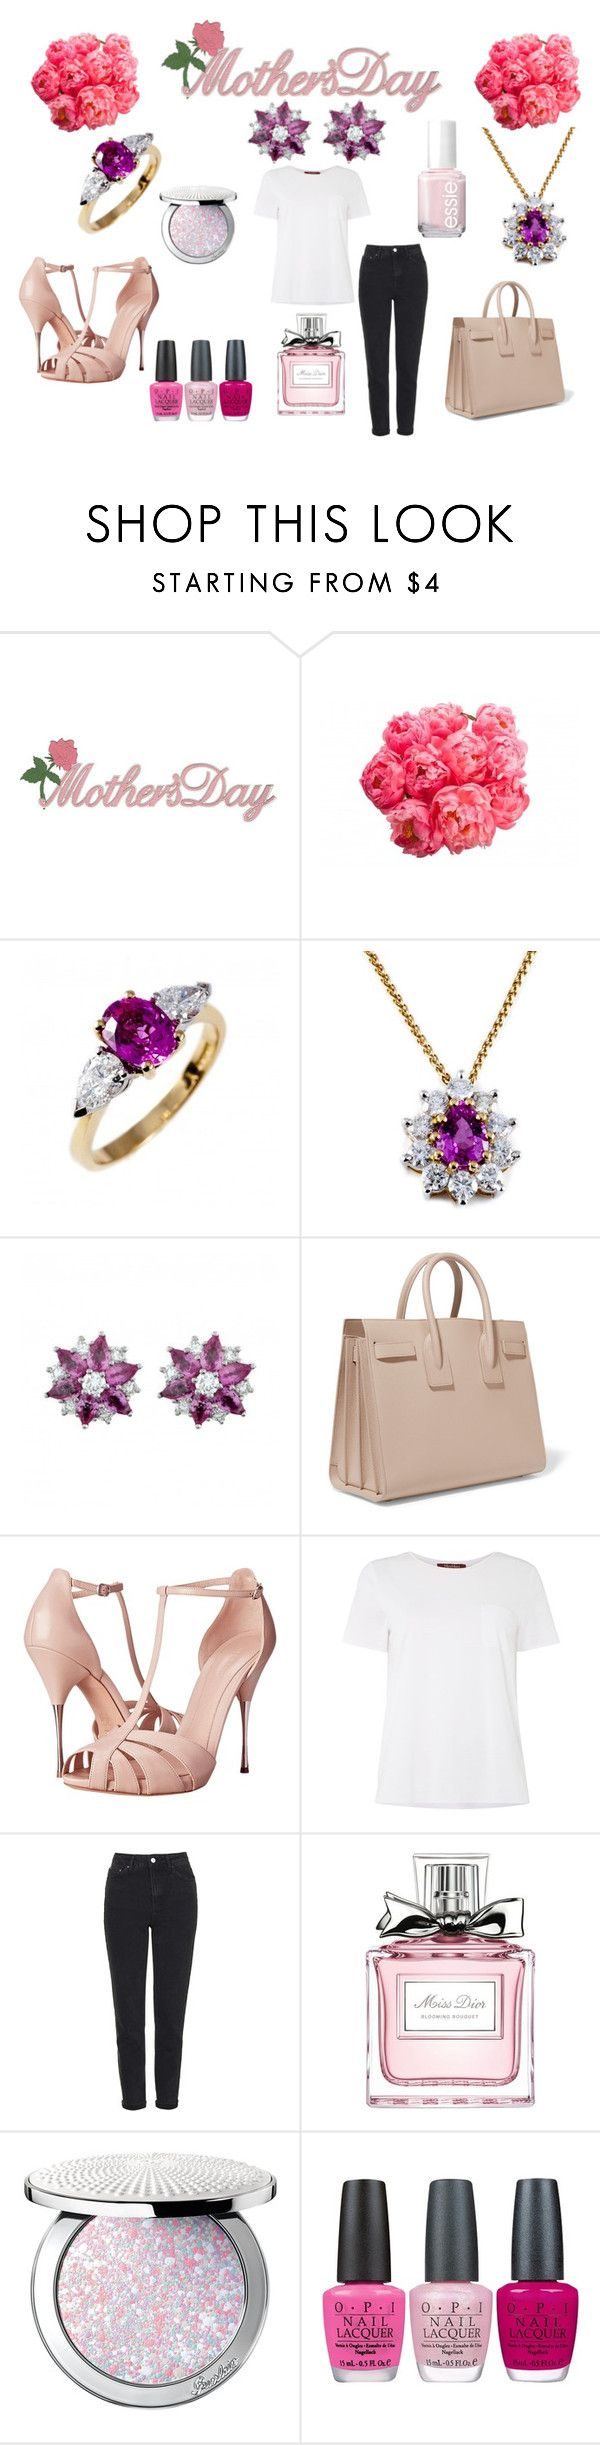 """Mothers Day Gift Guide"" by jamesness on Polyvore featuring Yves Saint Laurent, Alexander McQueen, MaxMara, Topshop, Christian Dior, Guerlain, OPI and Essie"